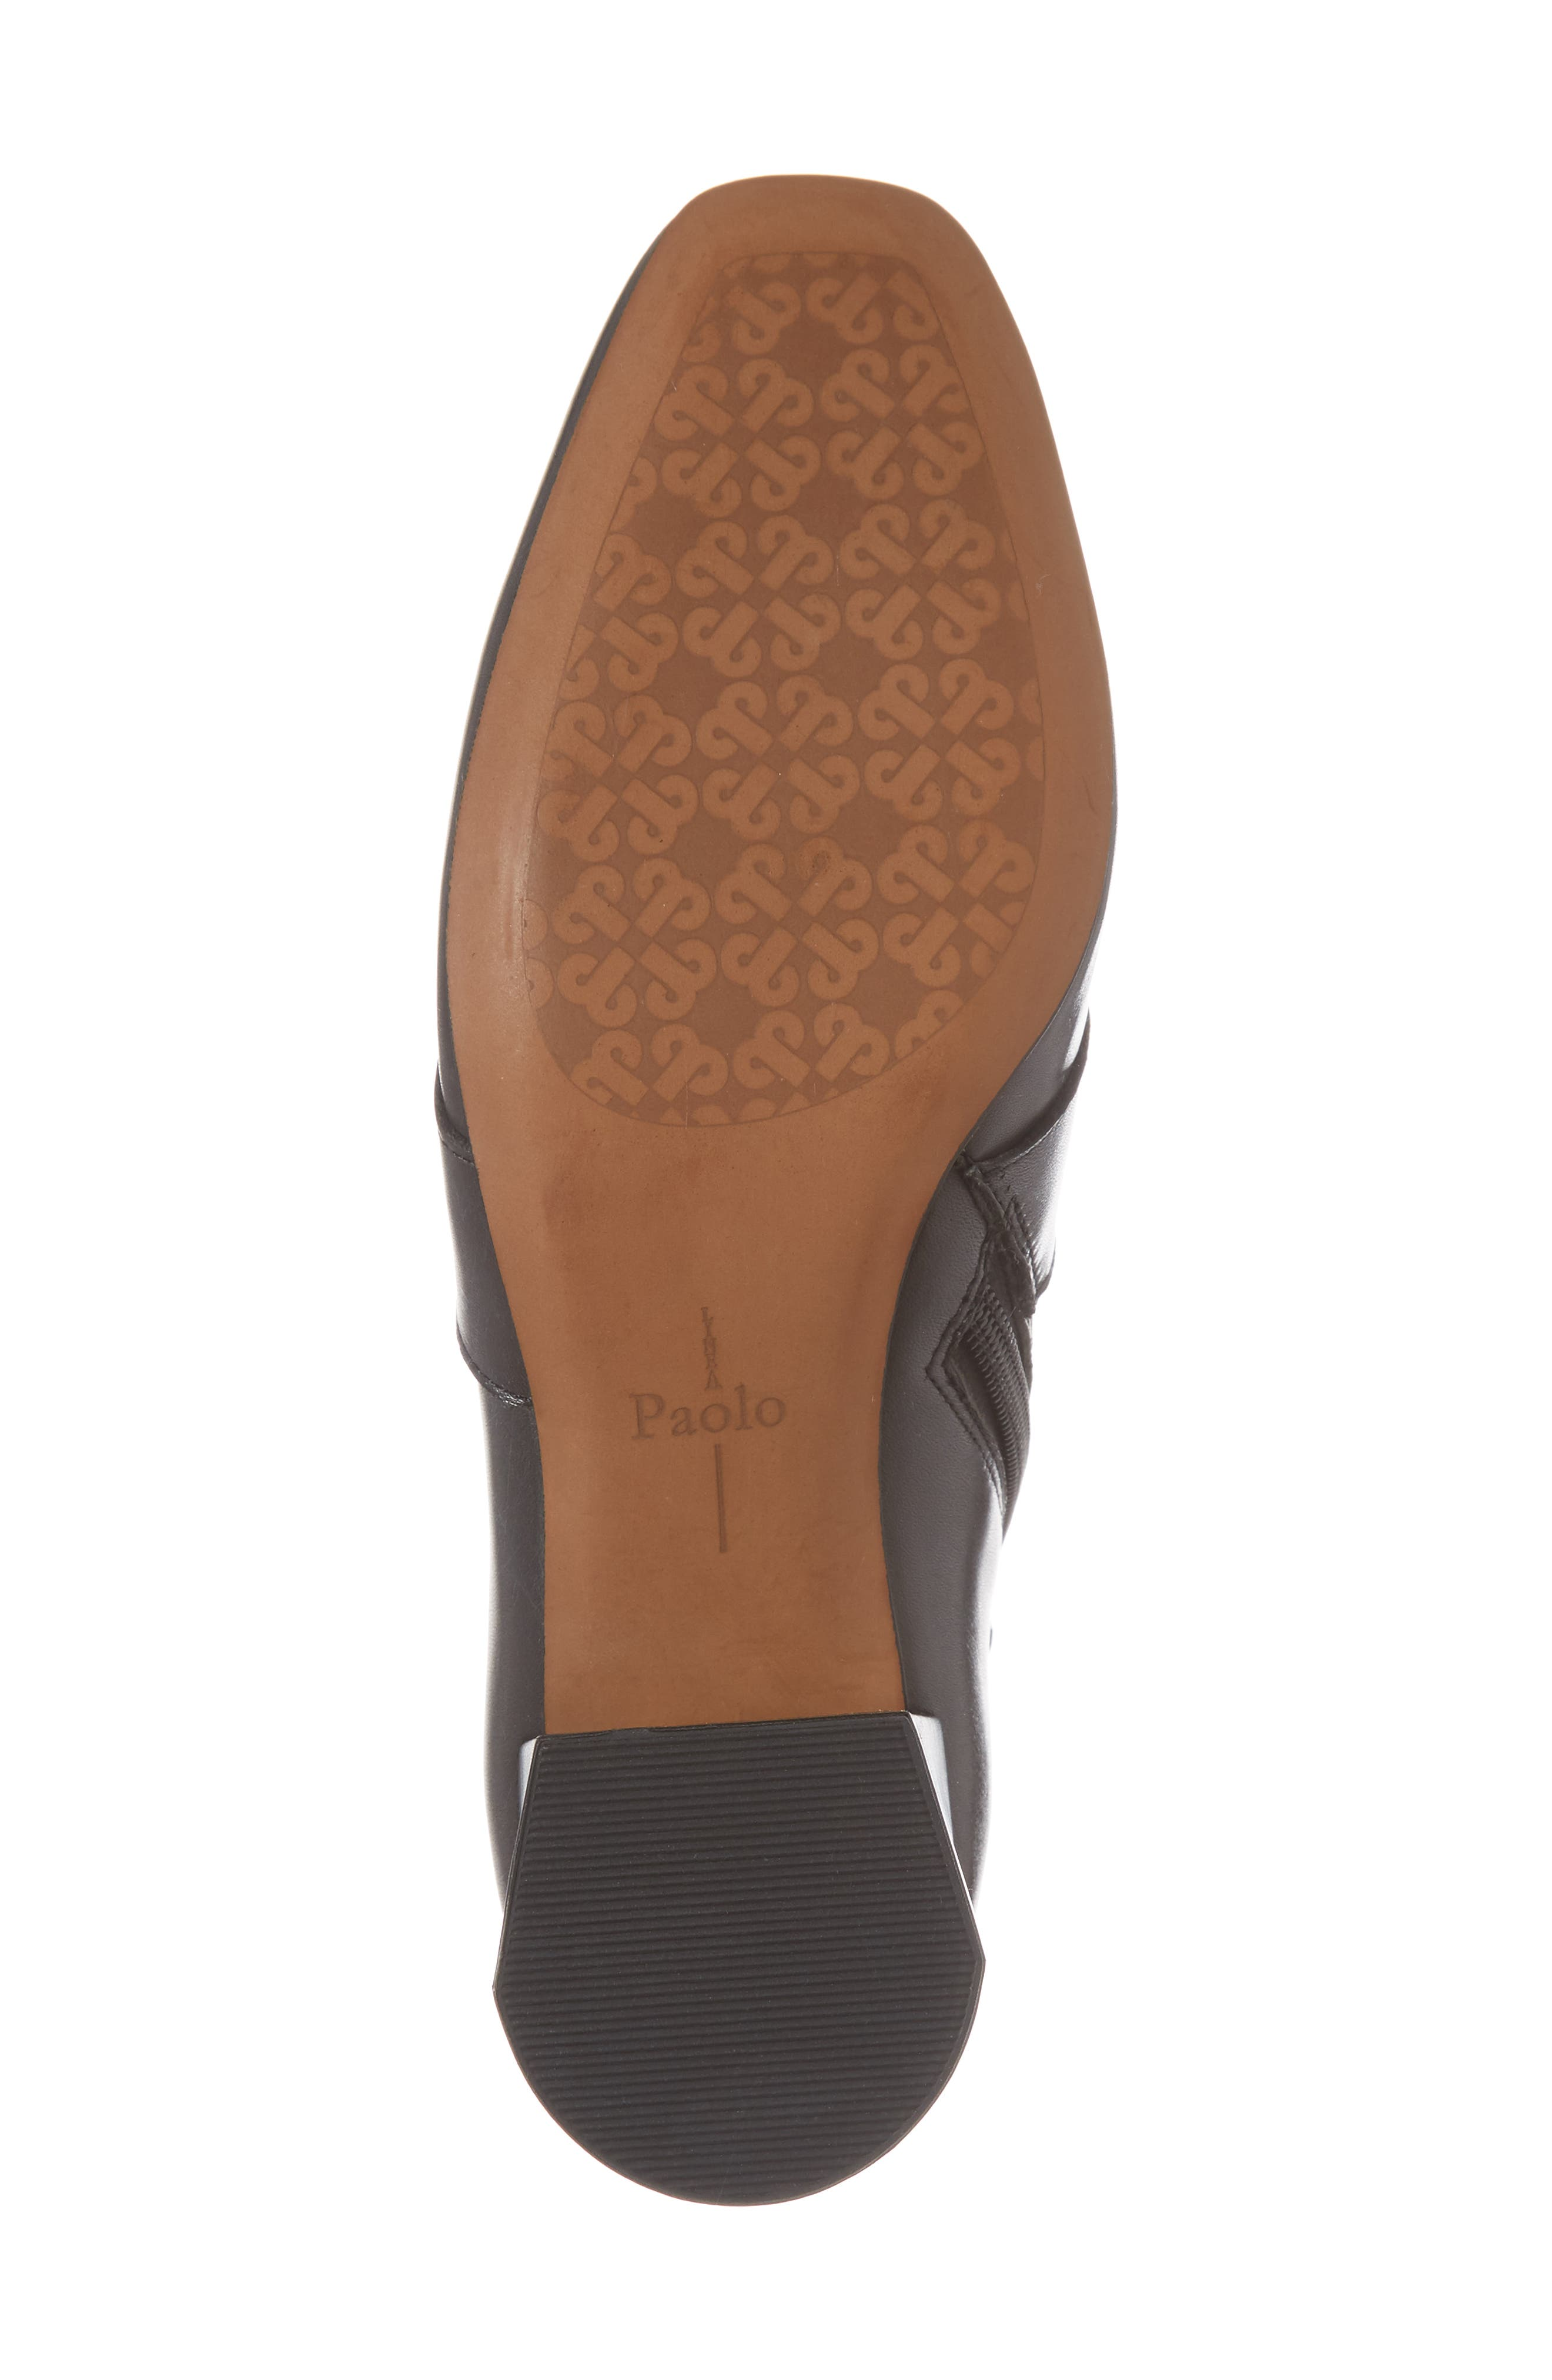 Cadence Buckle Bootie,                             Alternate thumbnail 6, color,                             009